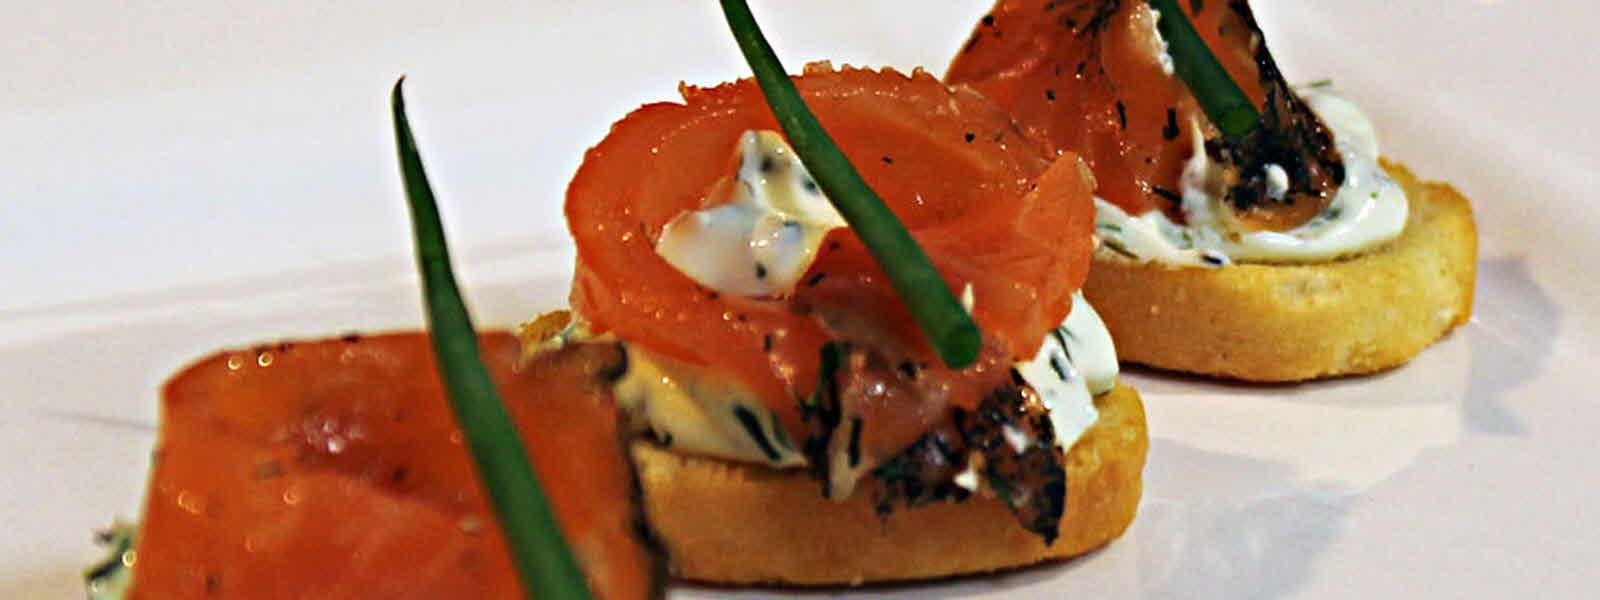 Cream cheese, chive & smoked salmon canapesk